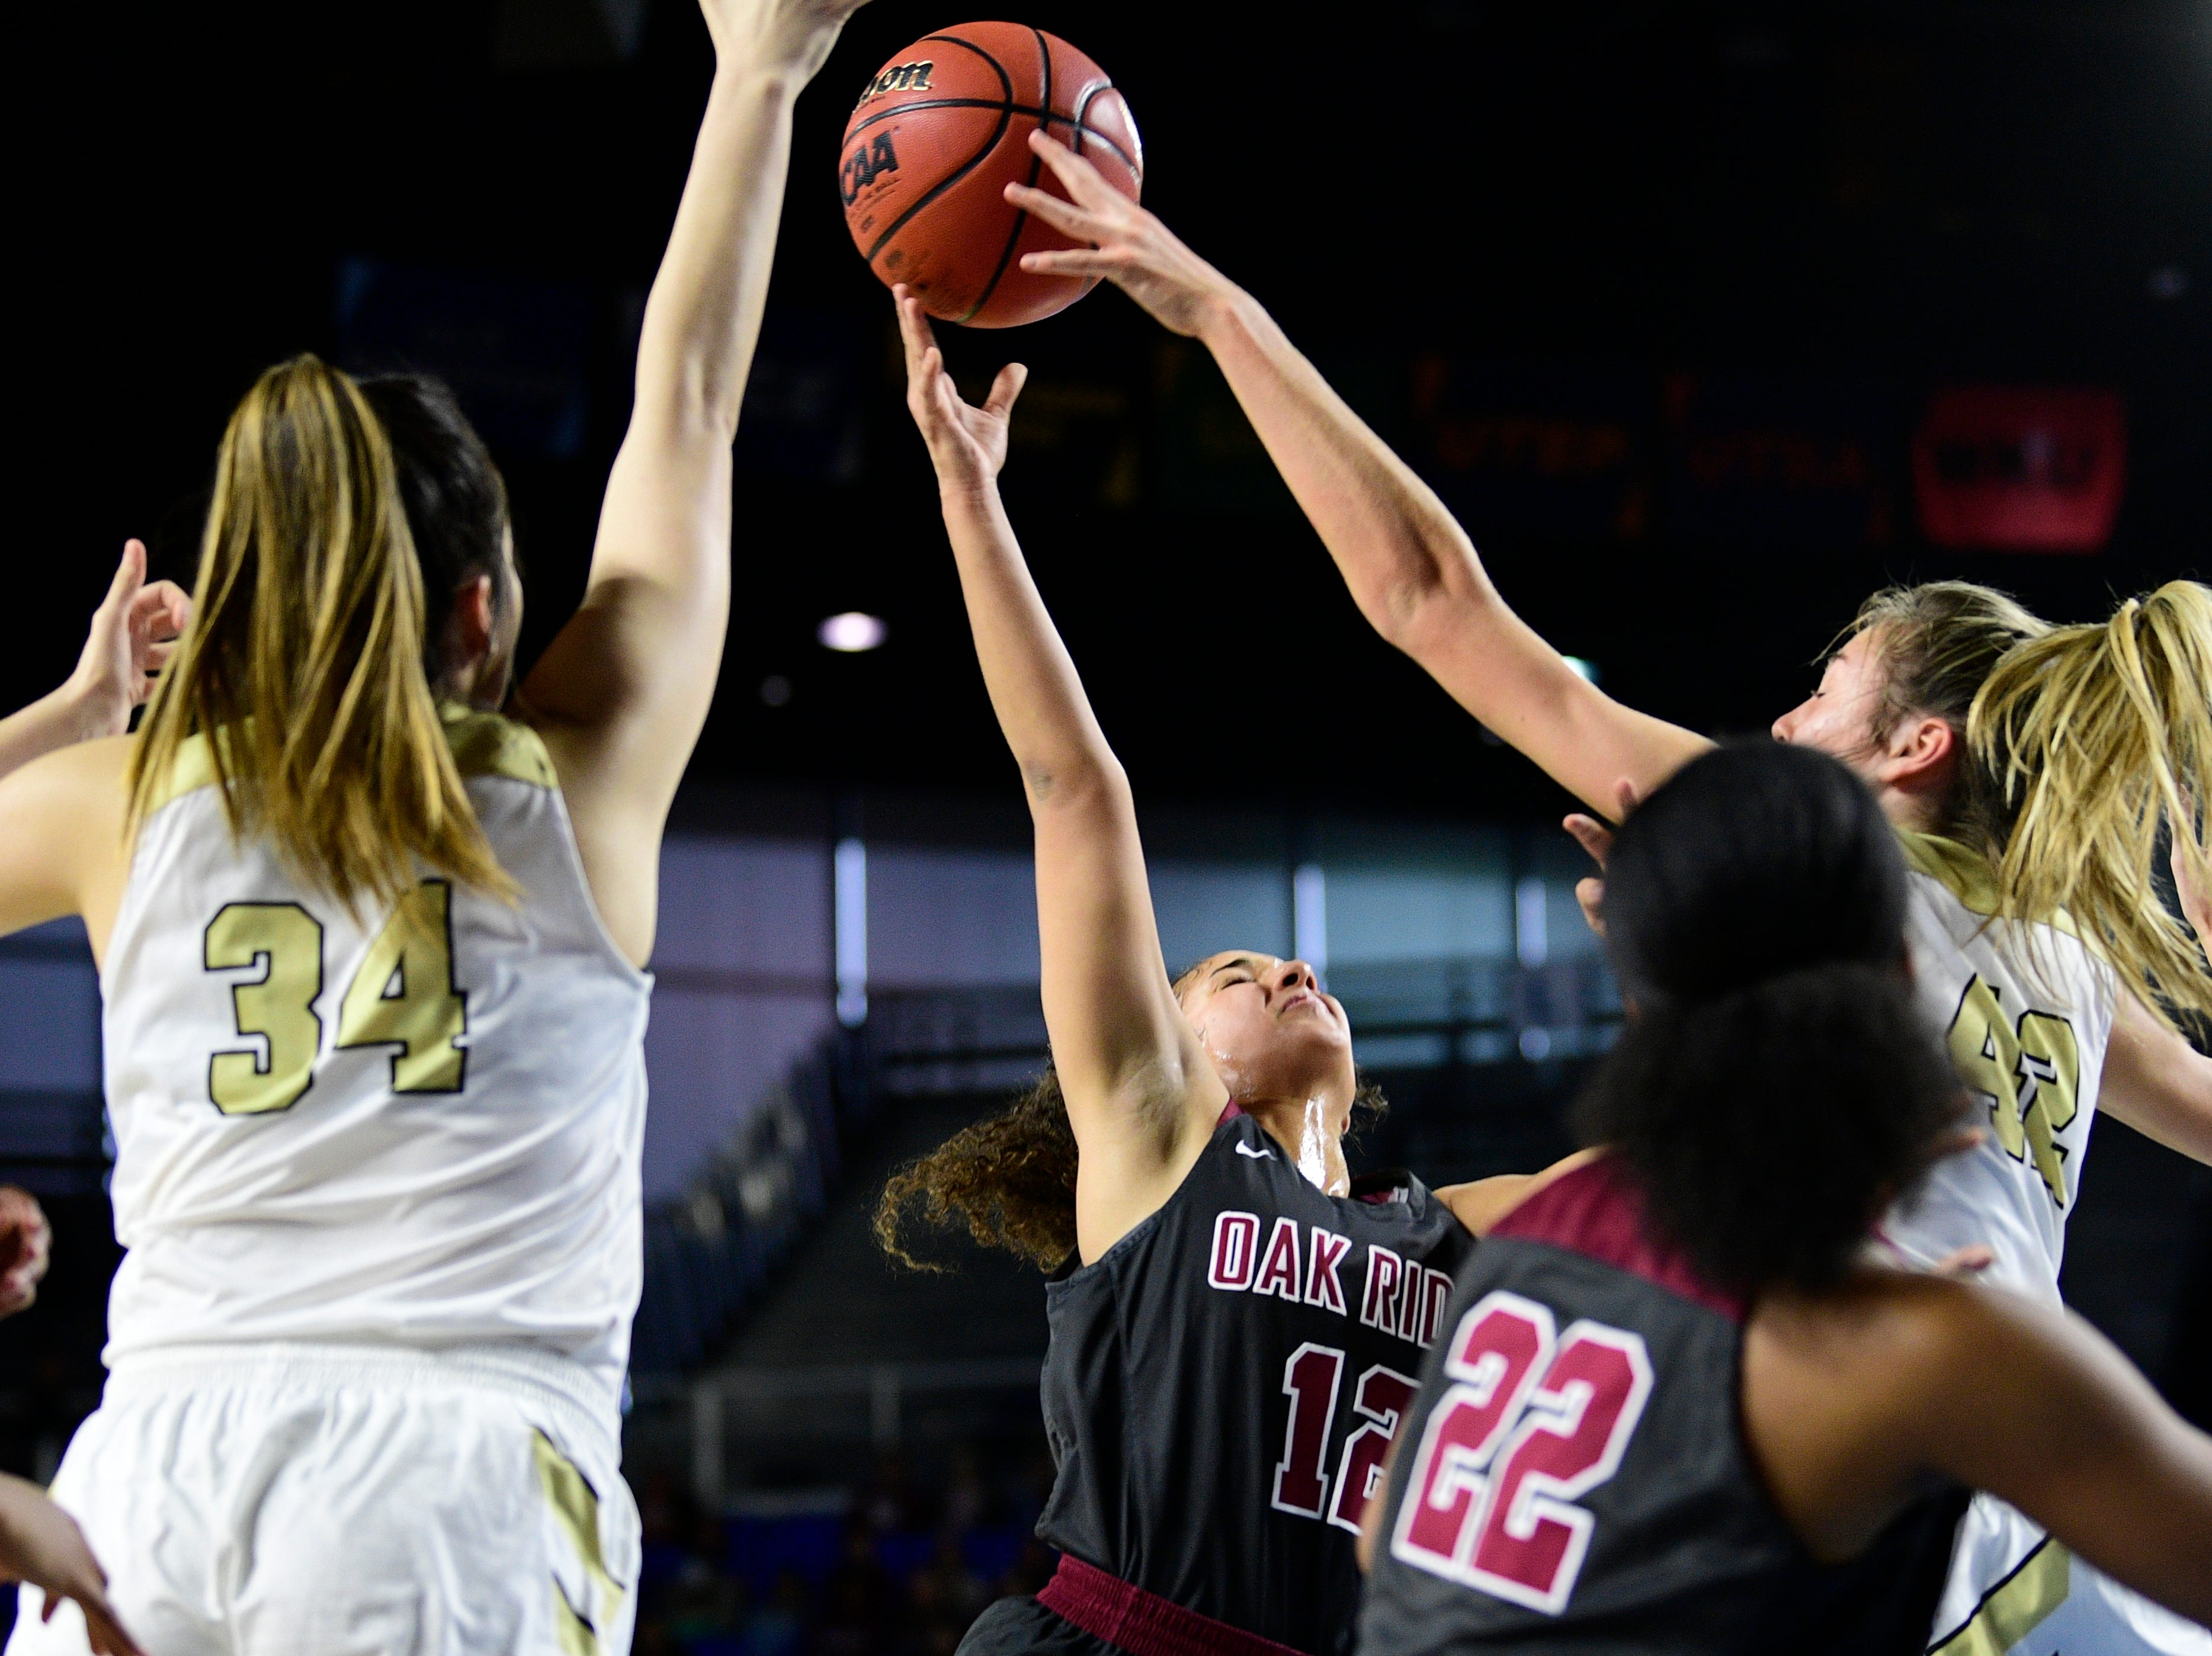 Oak Ridge's Brianna Dunbar (12) shoots the ball during a game between Oak Ridge and Bradley Central at the TSSAA girls state tournament at the Murphy Center in Murfreesboro, Tennessee on Friday, March 8, 2019.